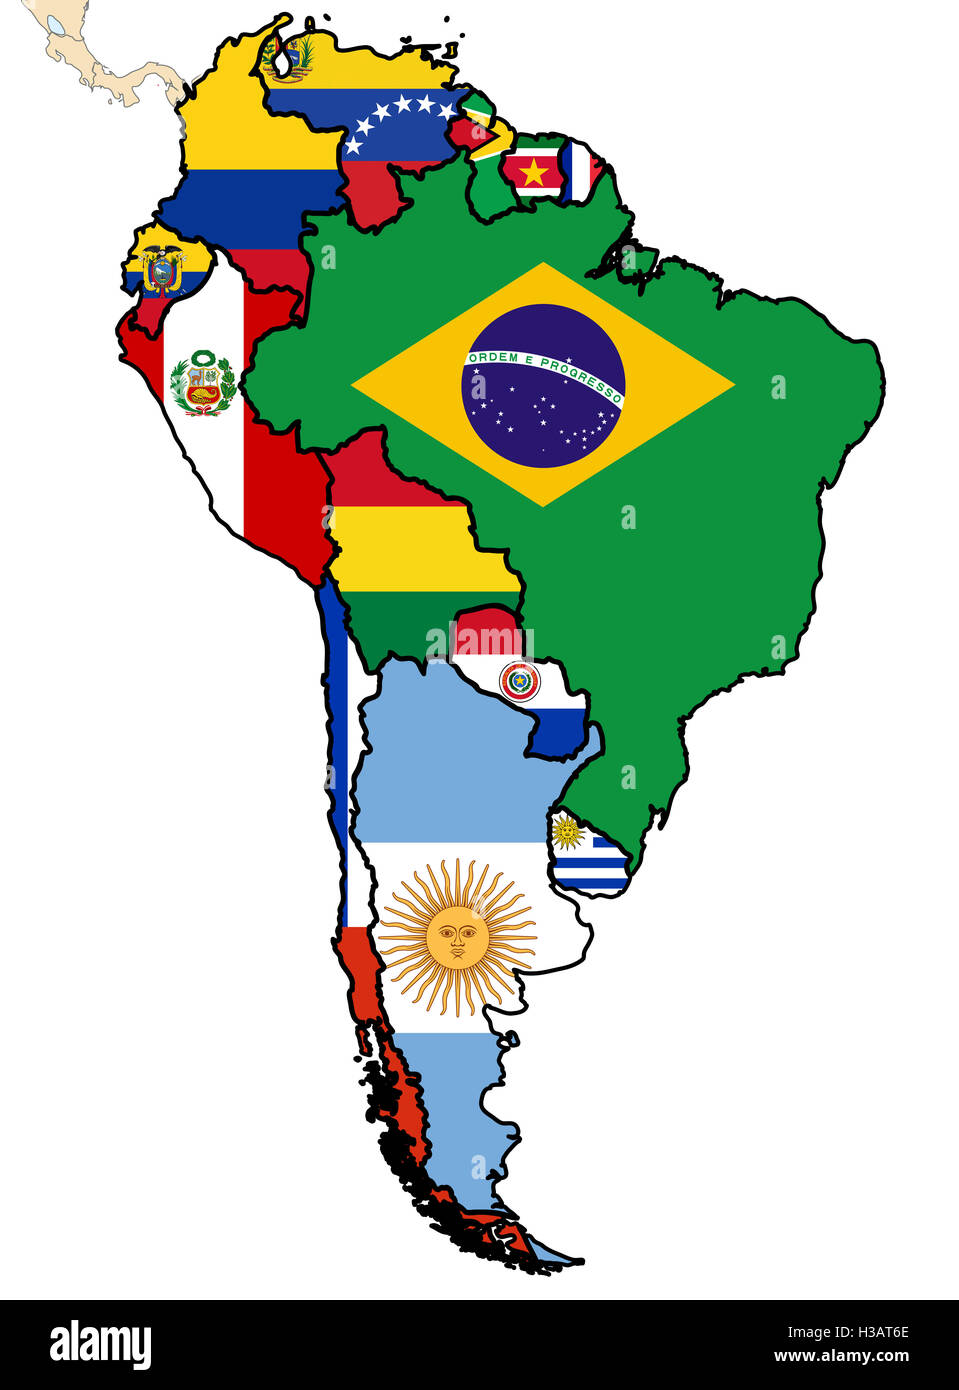 some map of south american countries Stock Photo: 122555062 - Alamy